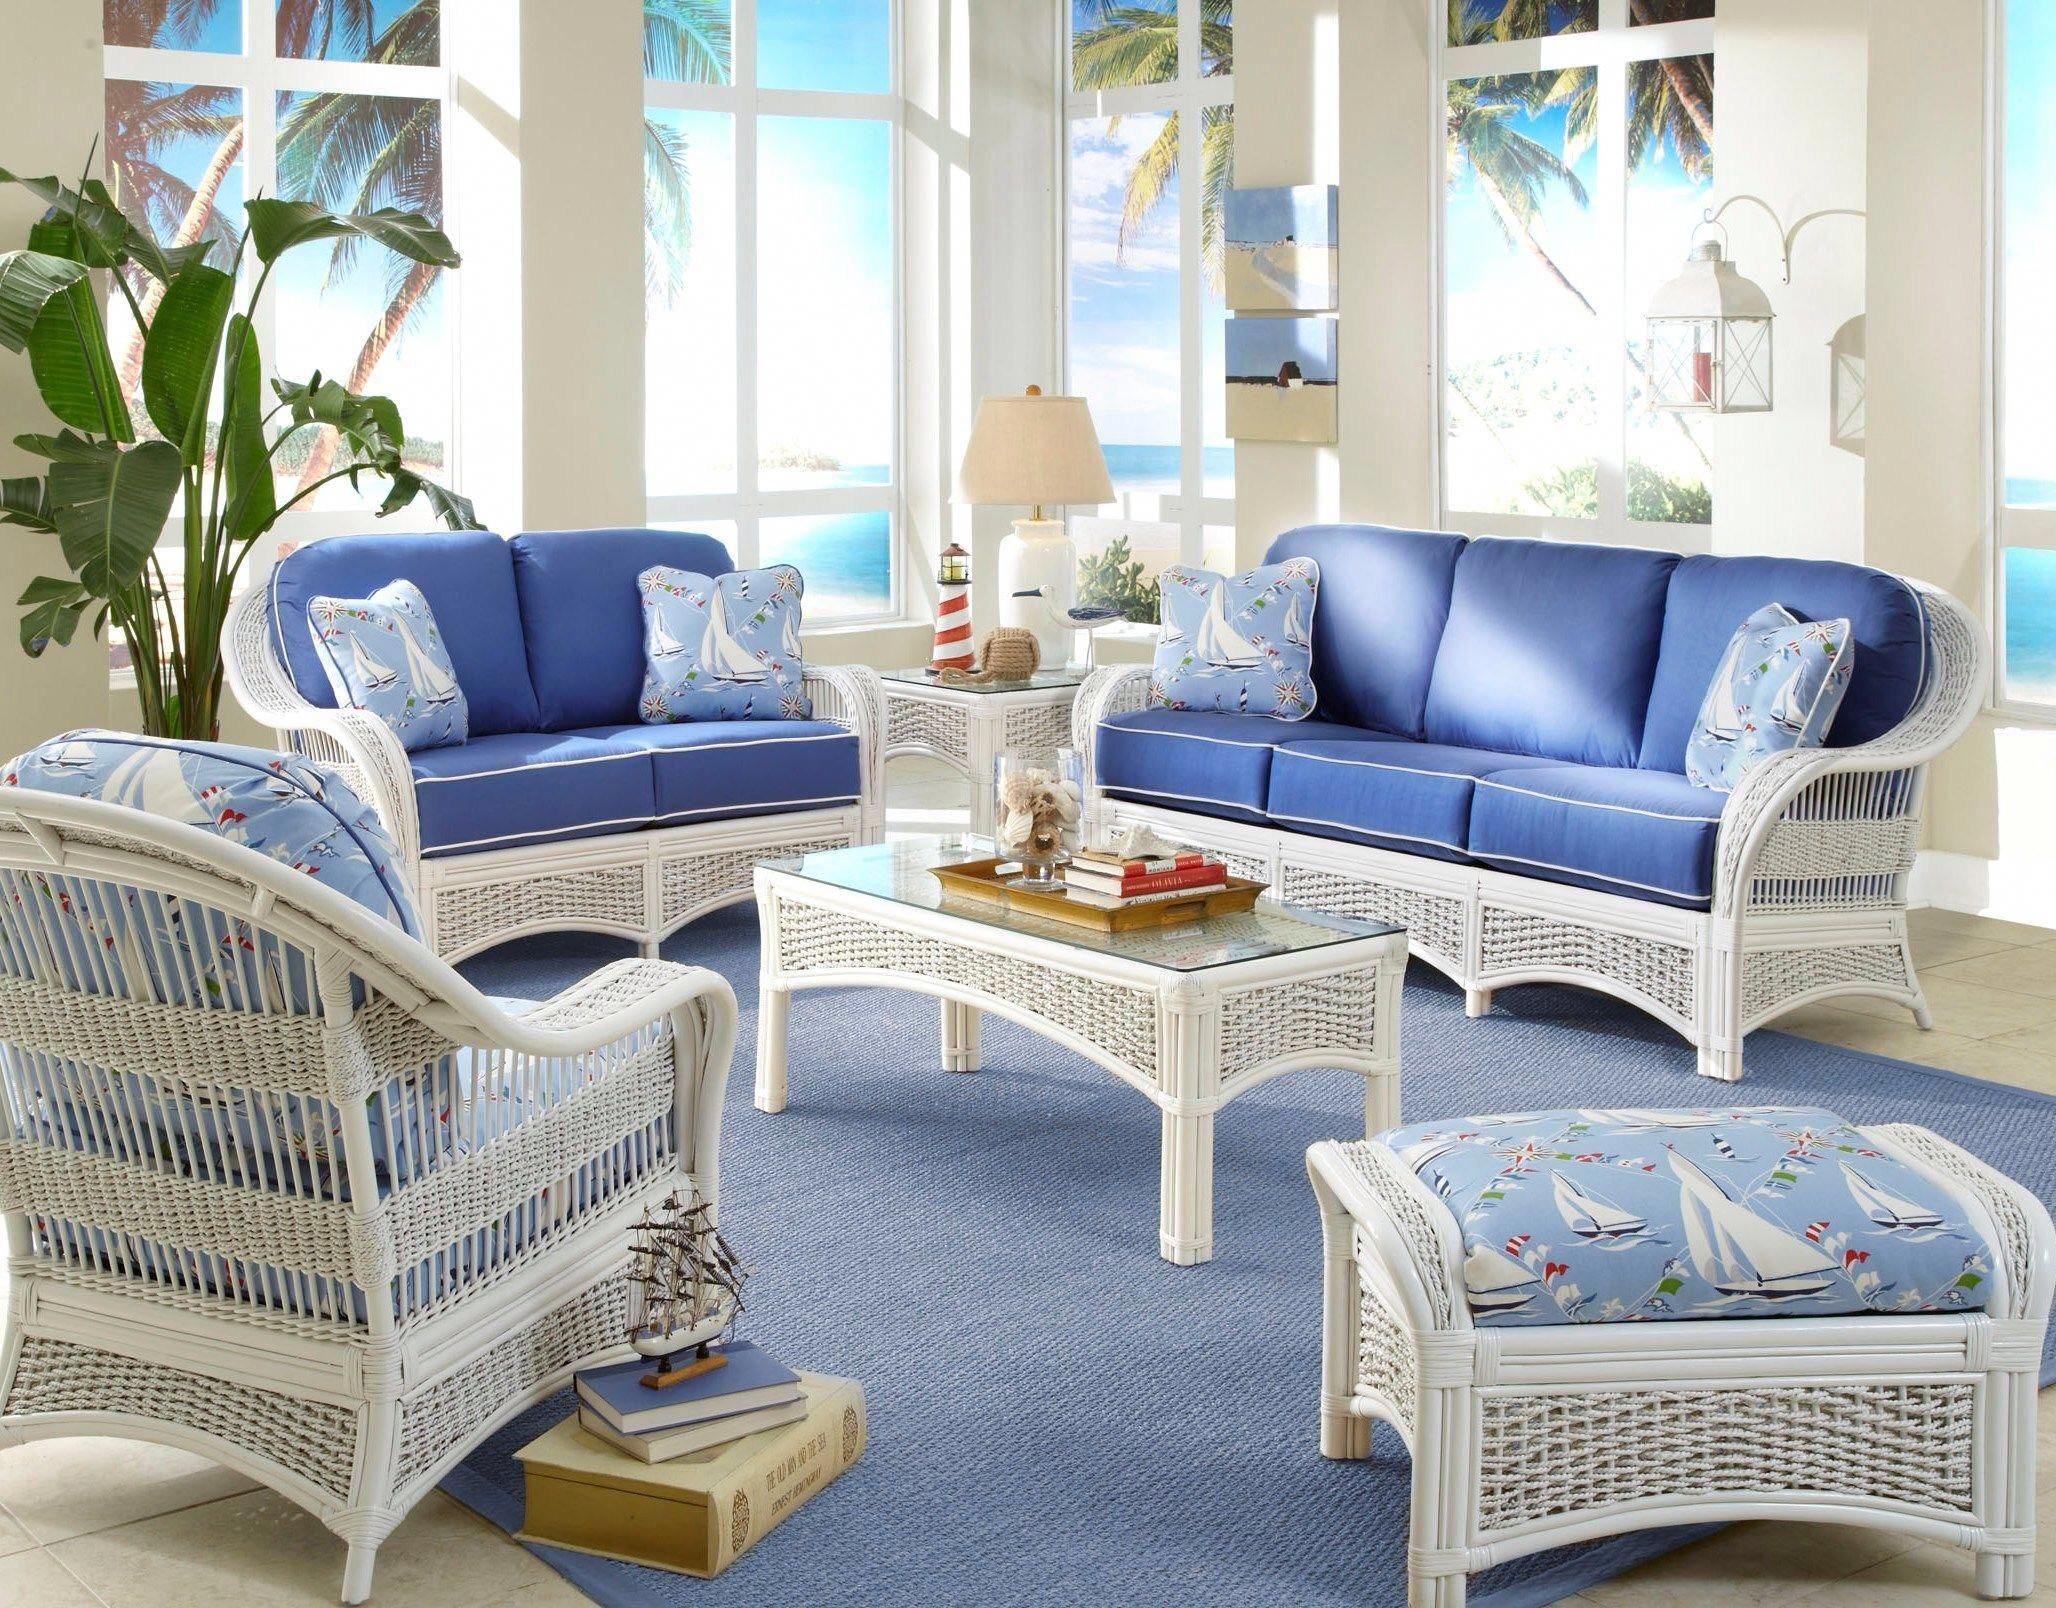 The possibilities are endless when you use white as the base of your color palette for your living room furniture. Regatta Living Room Set | White wicker furniture, Living ...